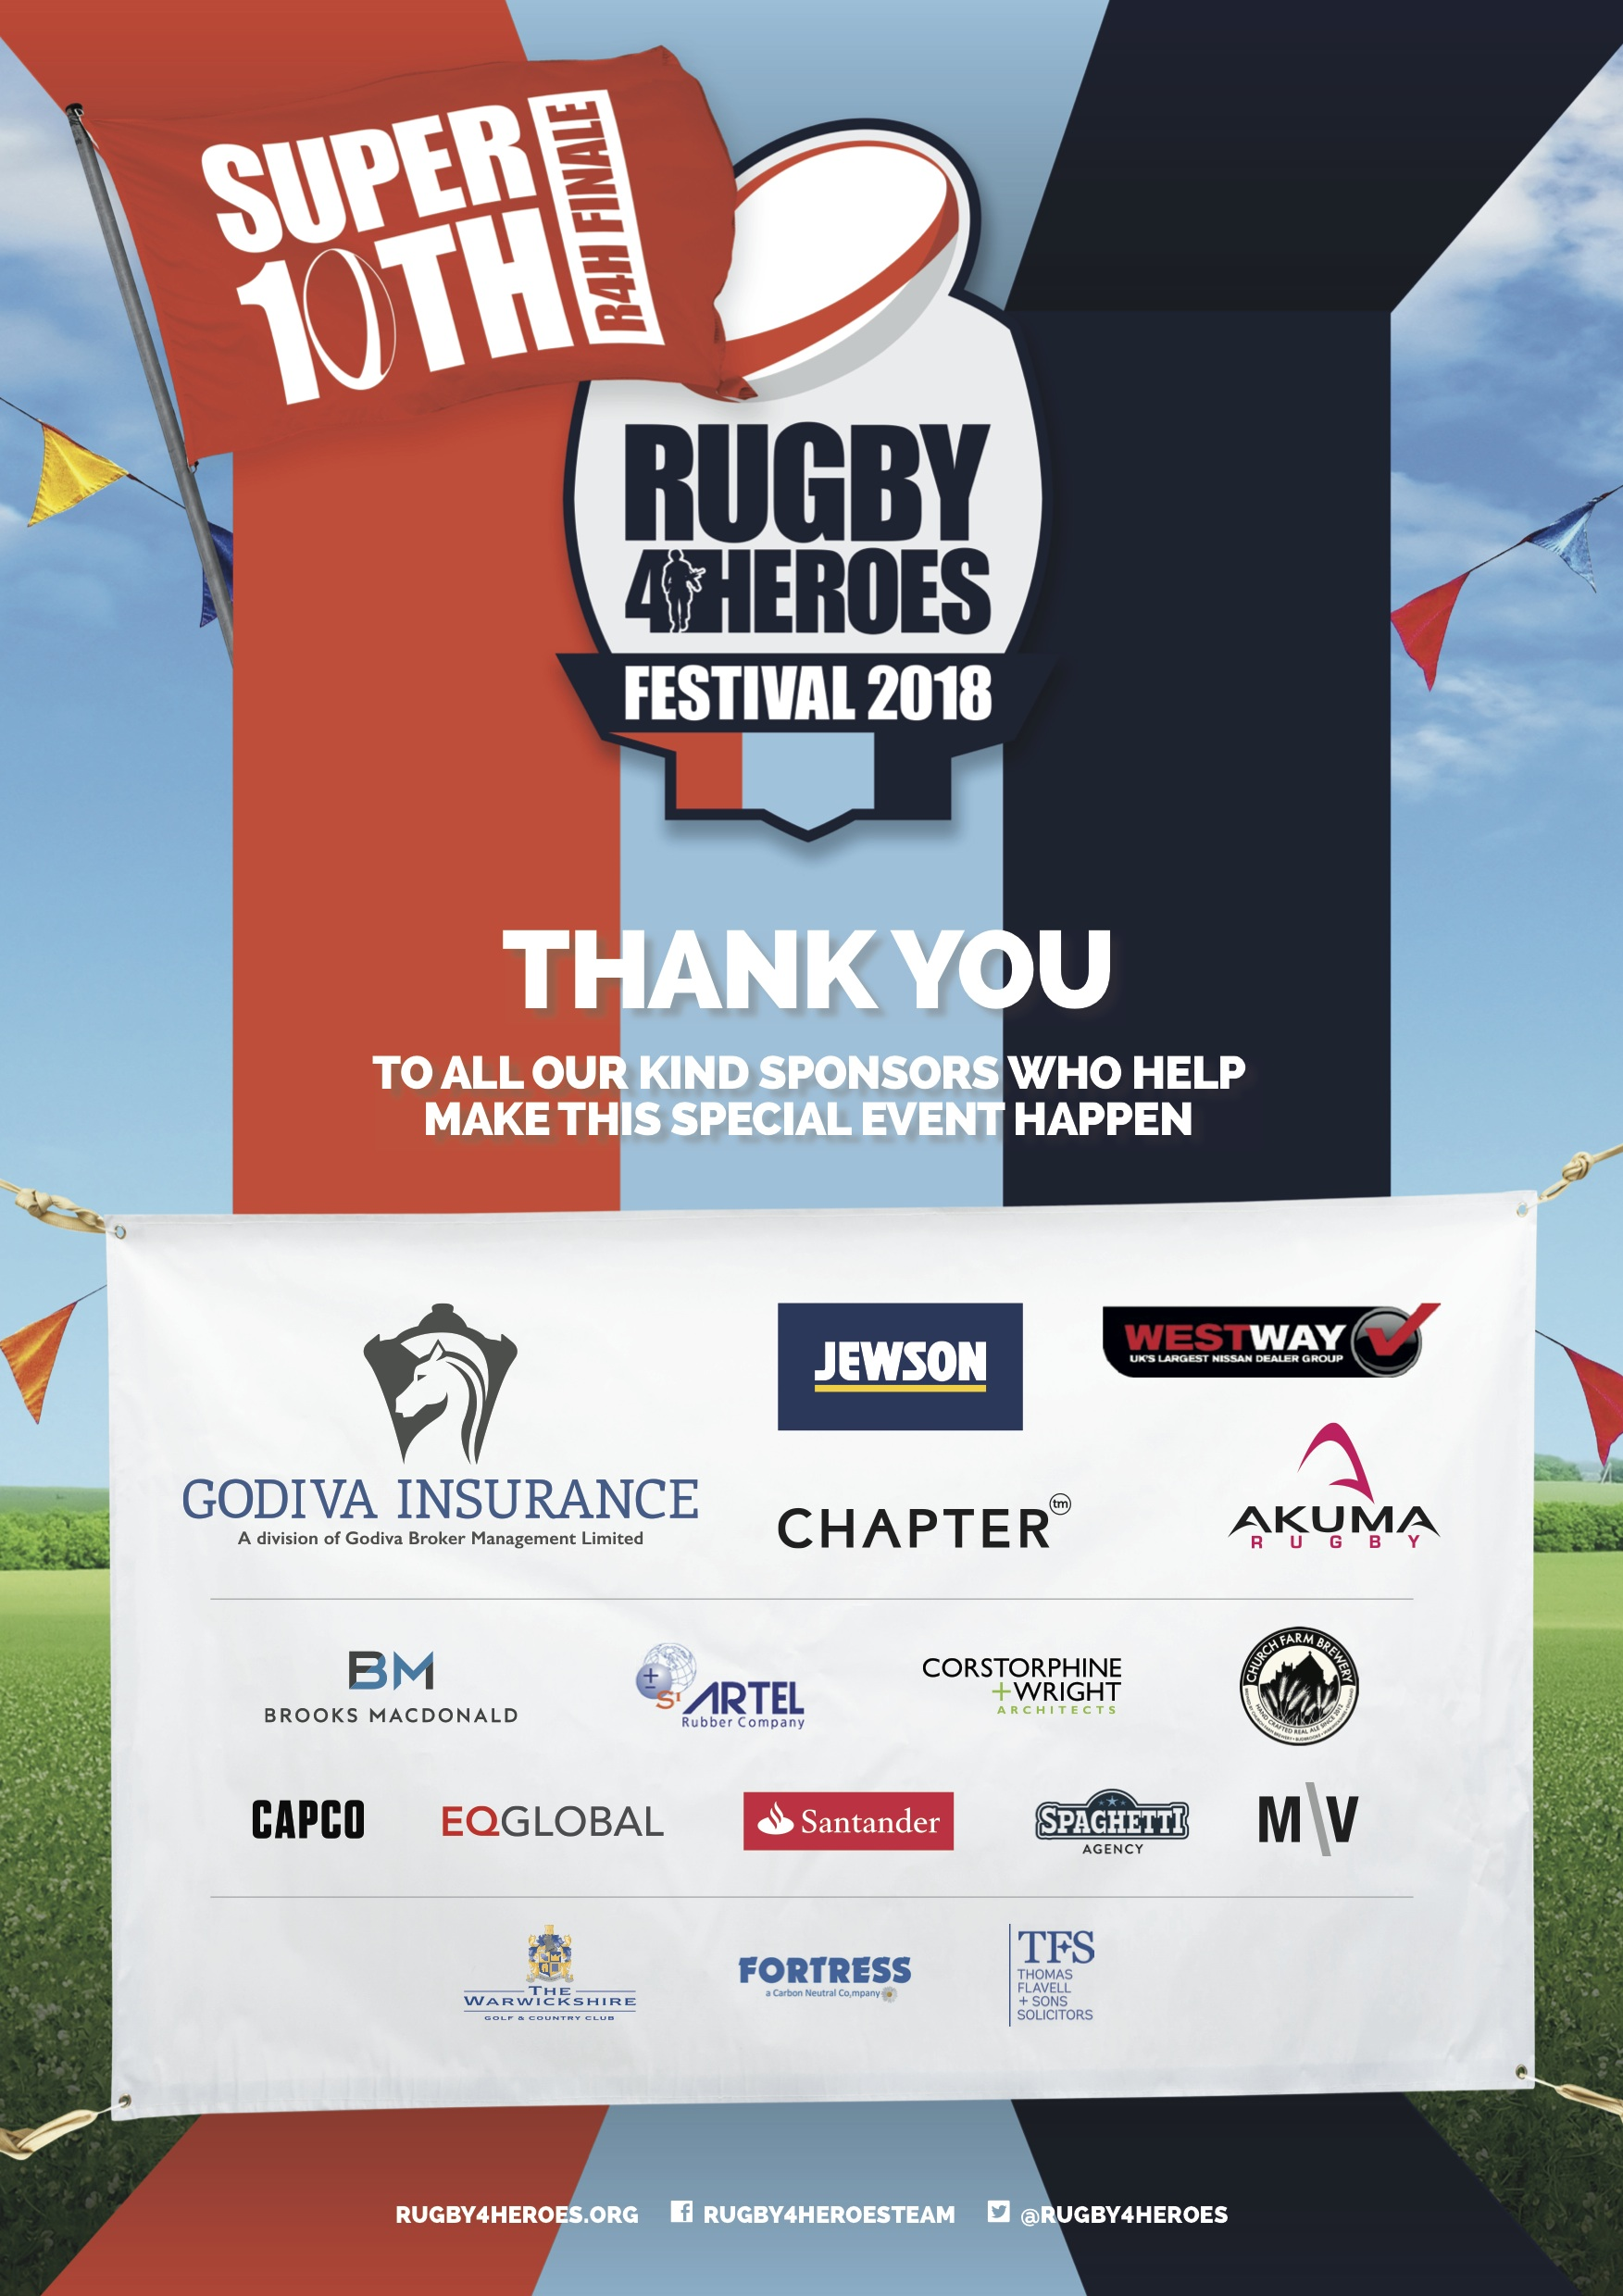 304564_Rugby4Heroes_Poster_Sponsor_Thankyou_003-3